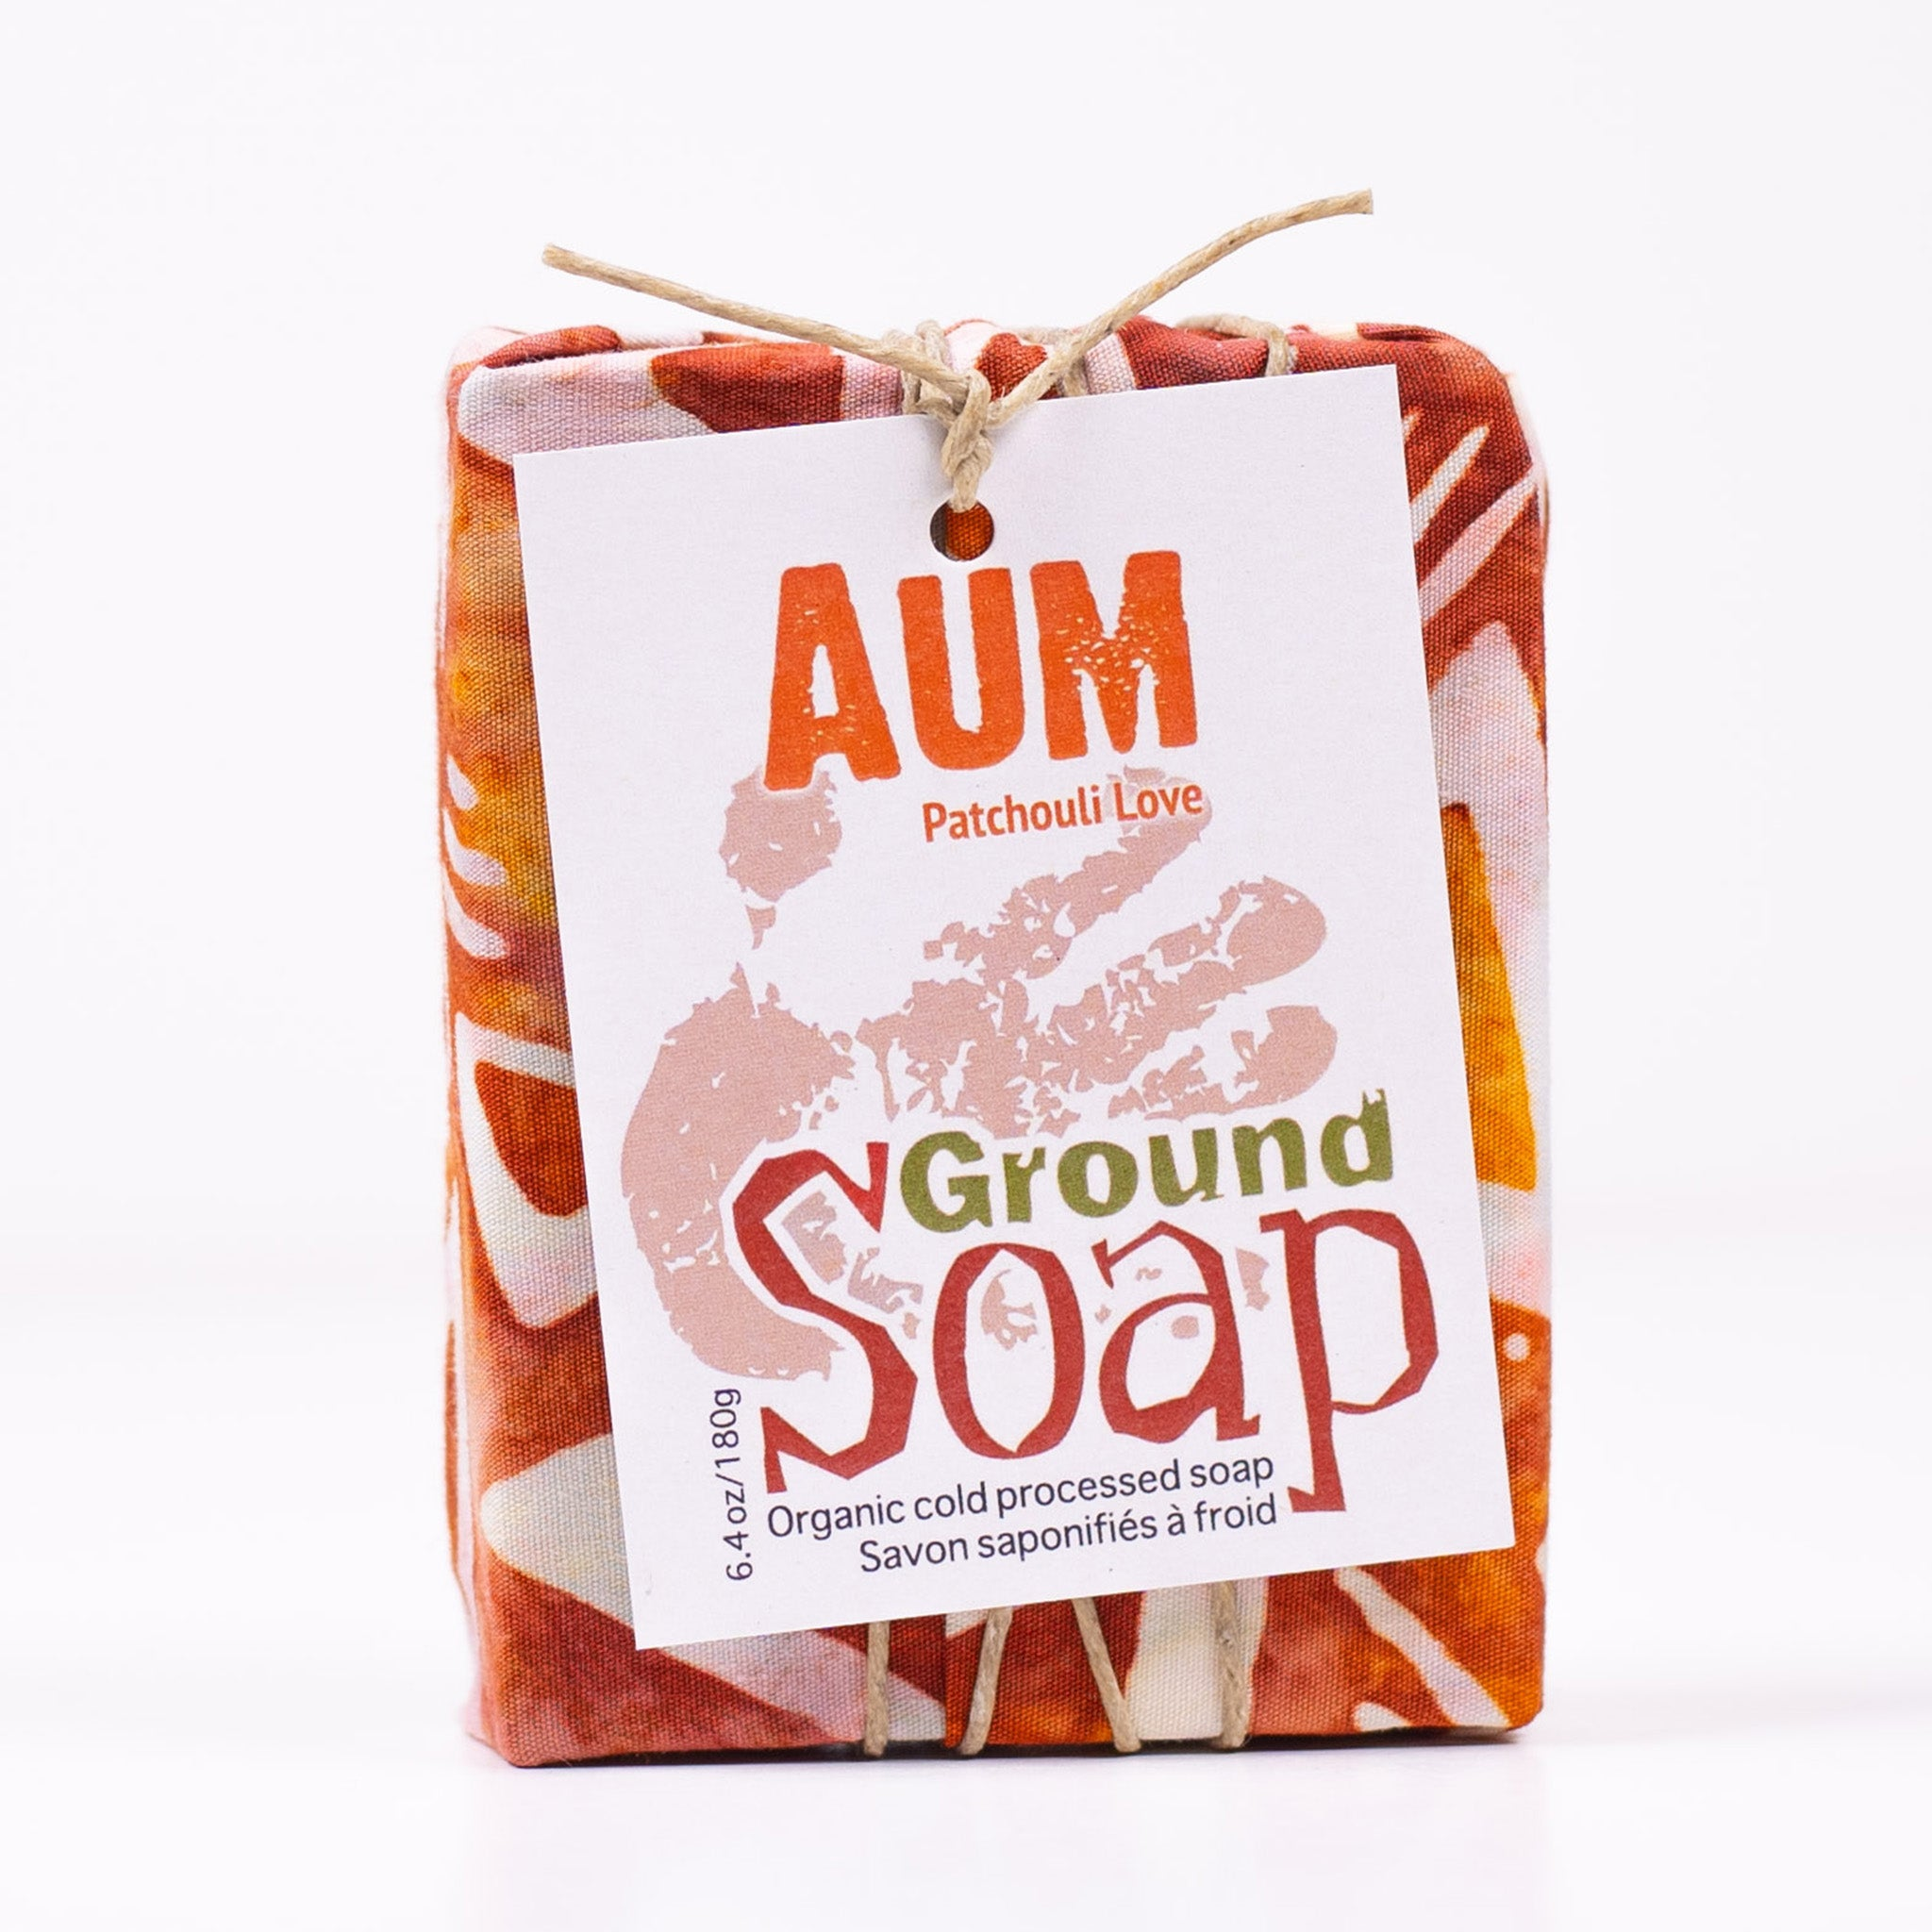 Aum Patchouli essential oil organic bar soap from Ground Soap.